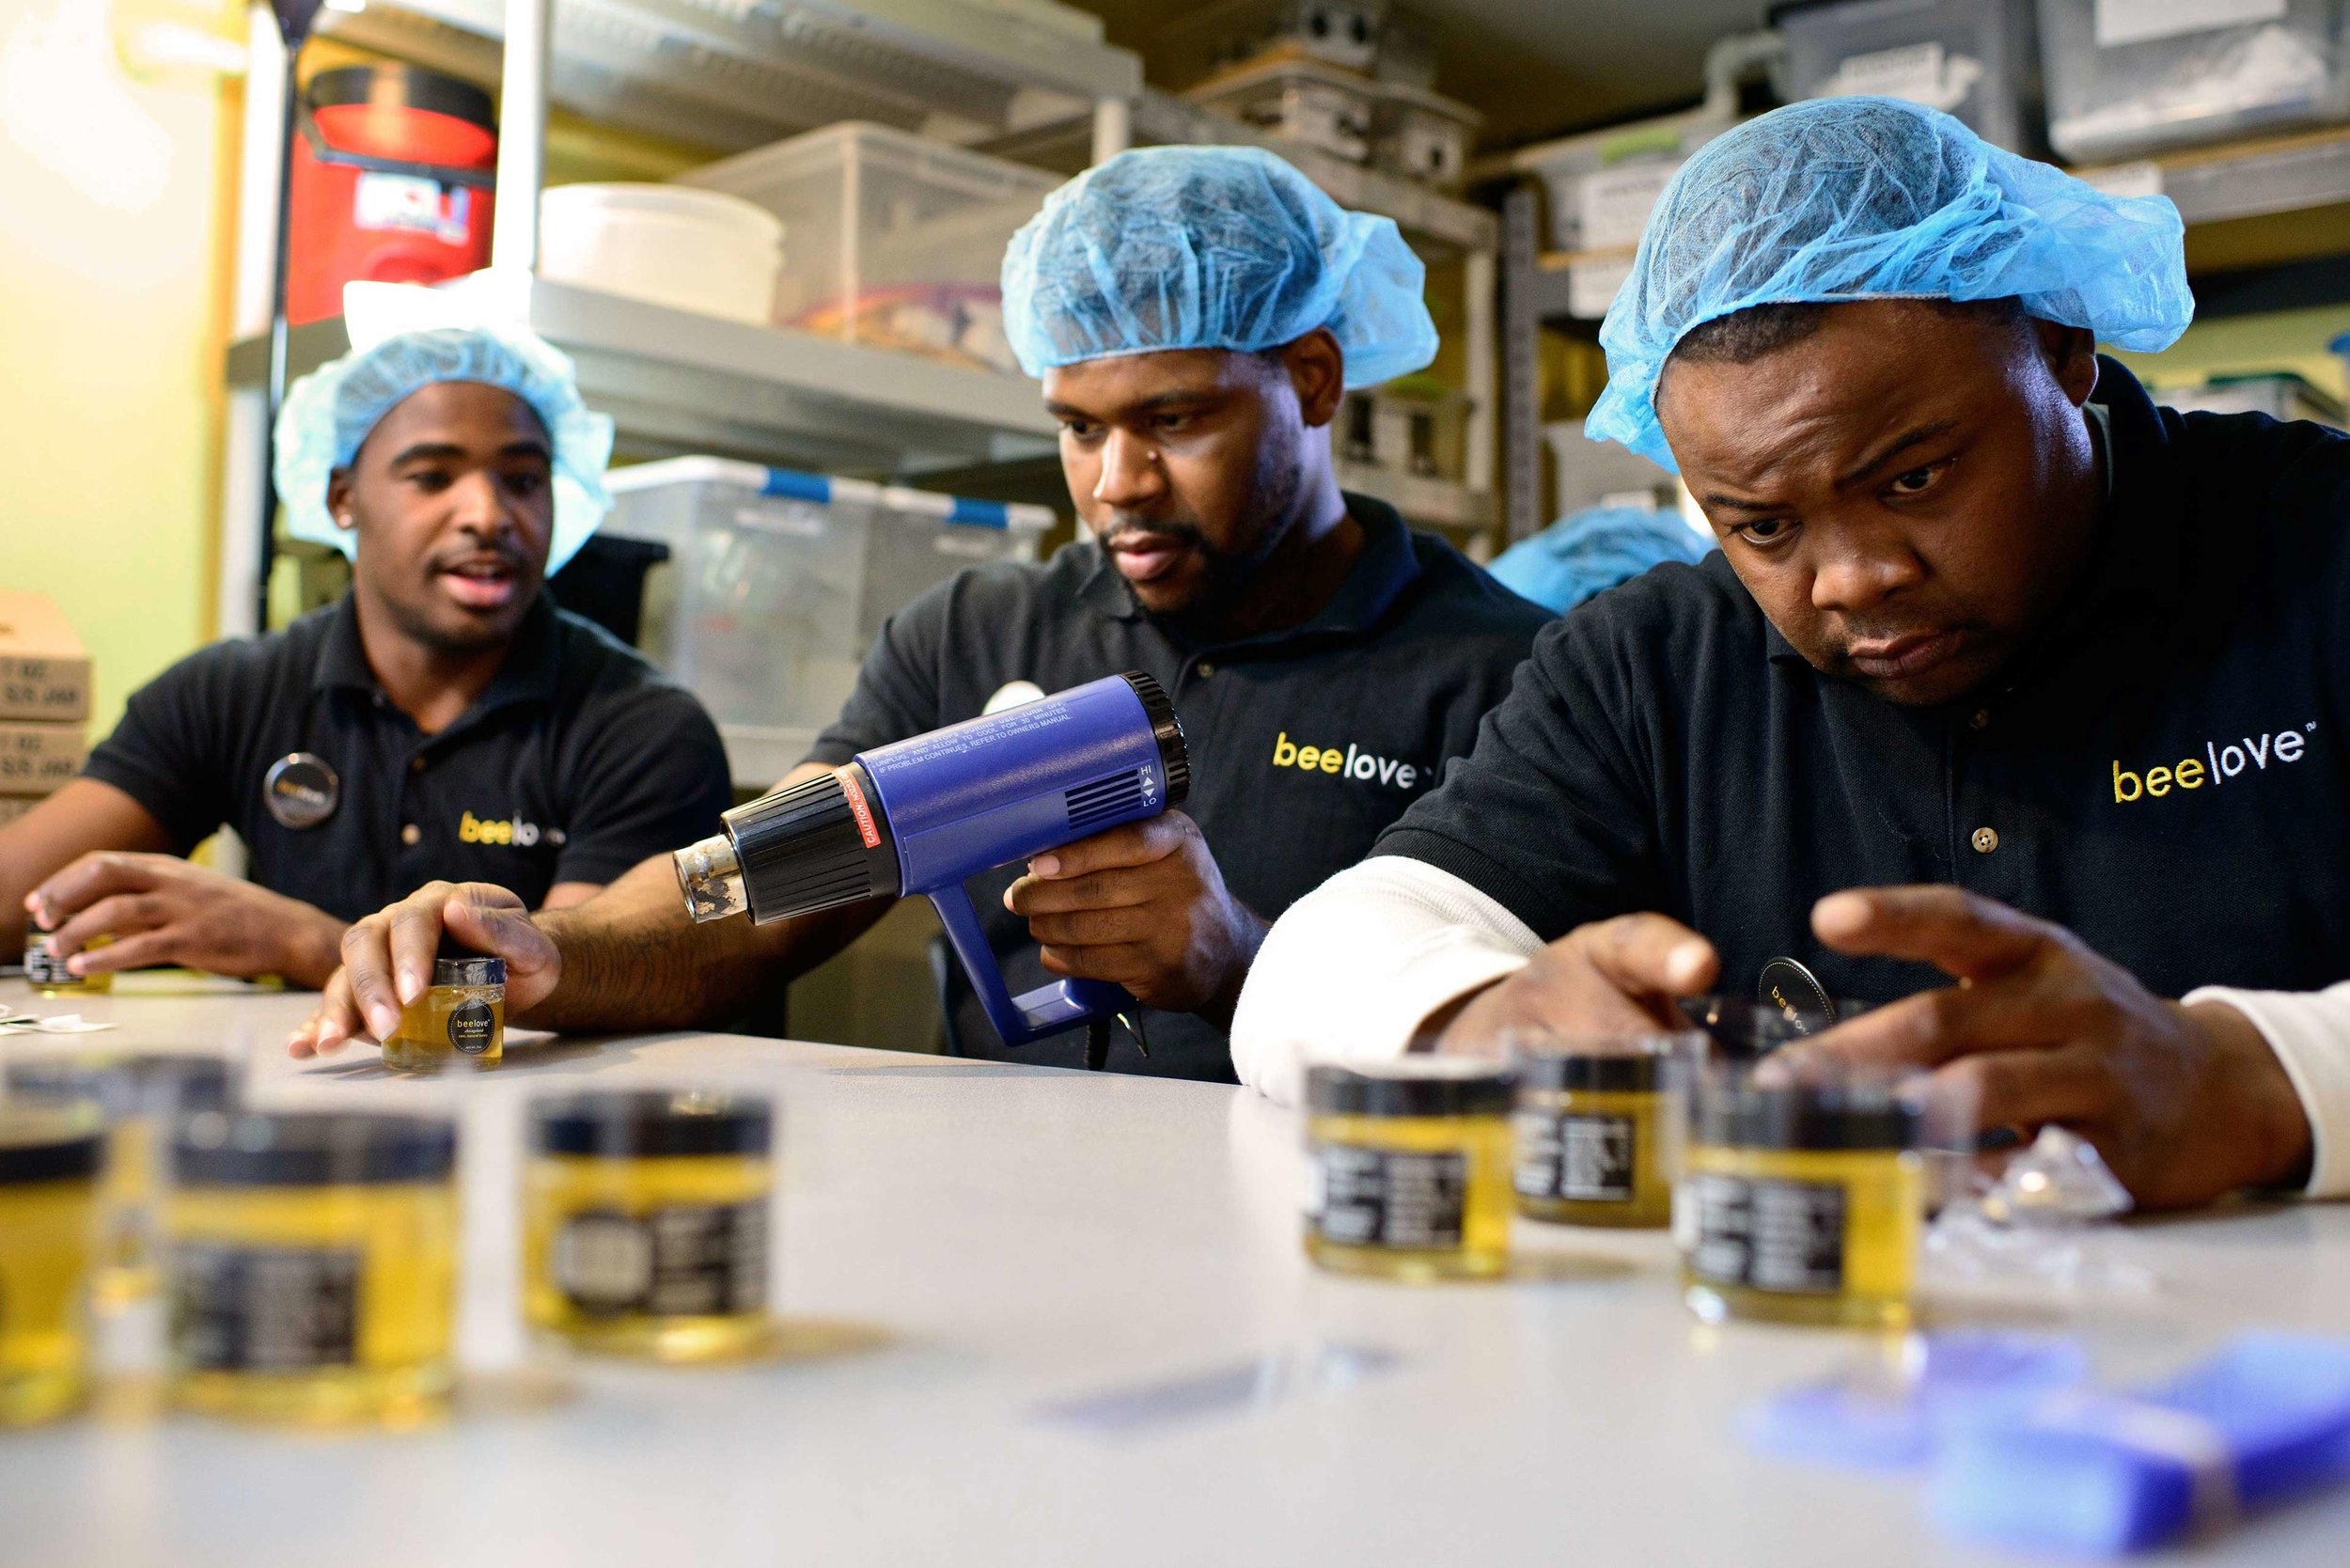 Sweet beginnings is a workforce development company in chicago that's benefitted from impact investments.